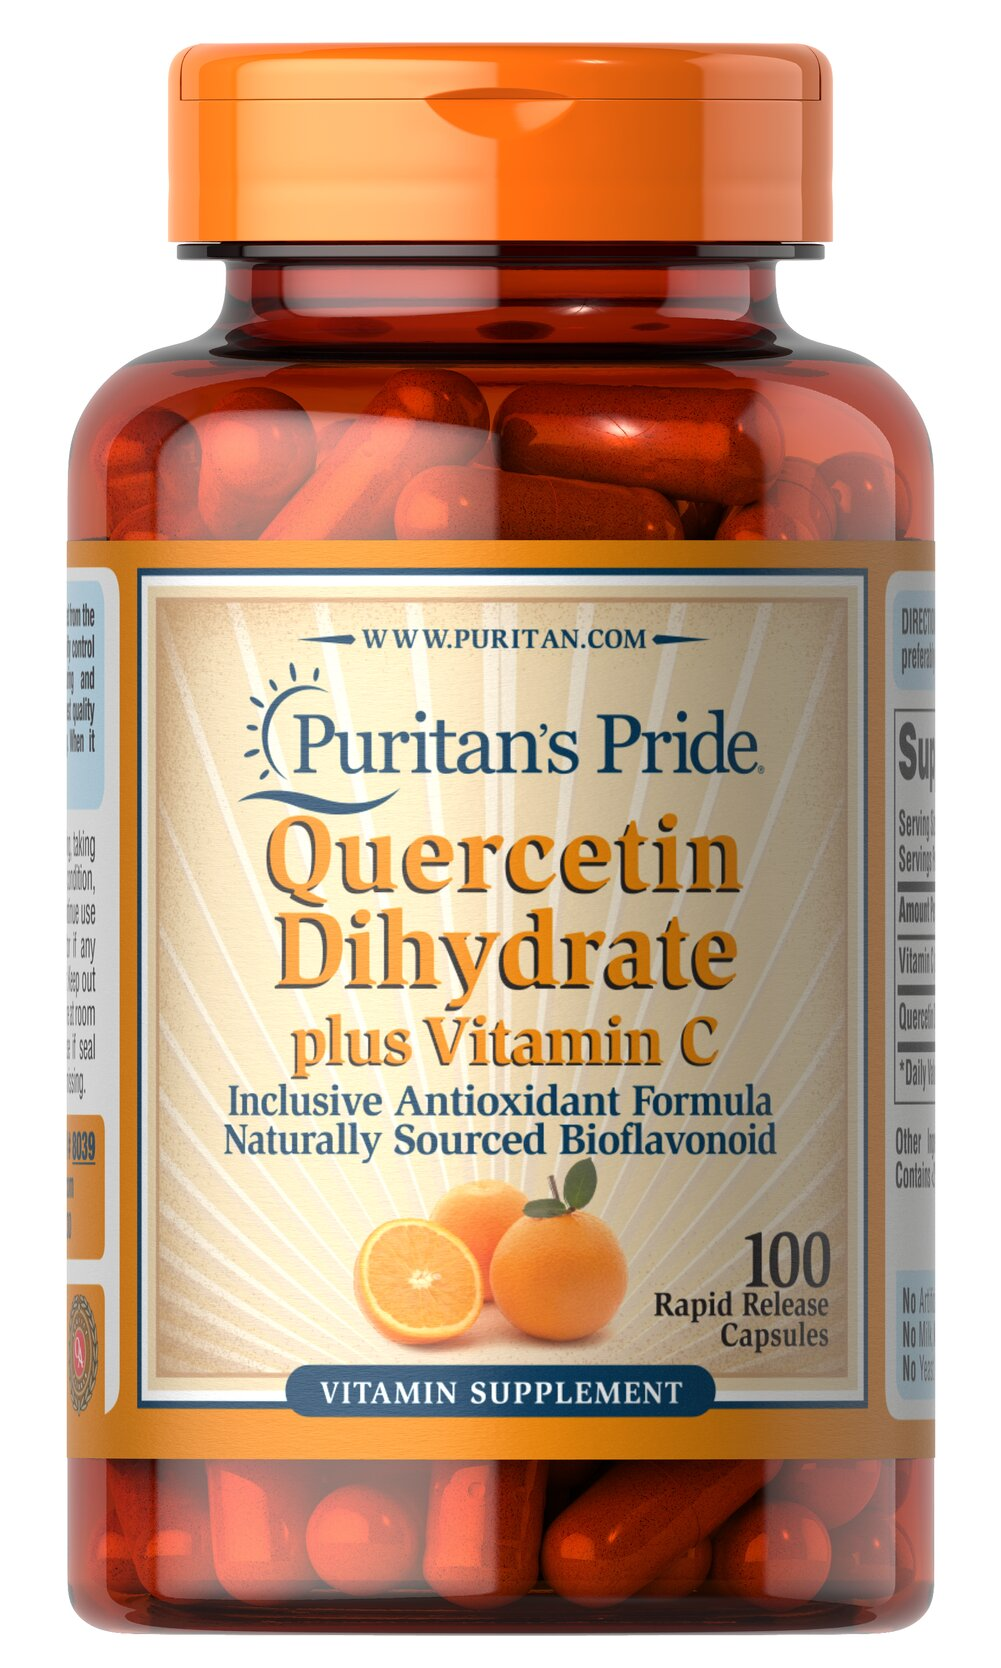 Quercetin Plus Vitamin C 250 mg/700 mg <p>Quercetin is a non-citrus bioflavonoid that possesses  beneficial antioxidant qualities.** For added support, we include Vitamin C, which has many benefits for your immune system, heart, joints and skin.** As an antioxidant, Vitamin C also helps neutralize harmful free radicals in cells.** This product contains 1400 mg Vitamin C (as Ascorbic Acid) and 500 mg Quercetin Dihydrate. Adults can take two tablets daily.</p> 100 Capsules 250 mg/700 m